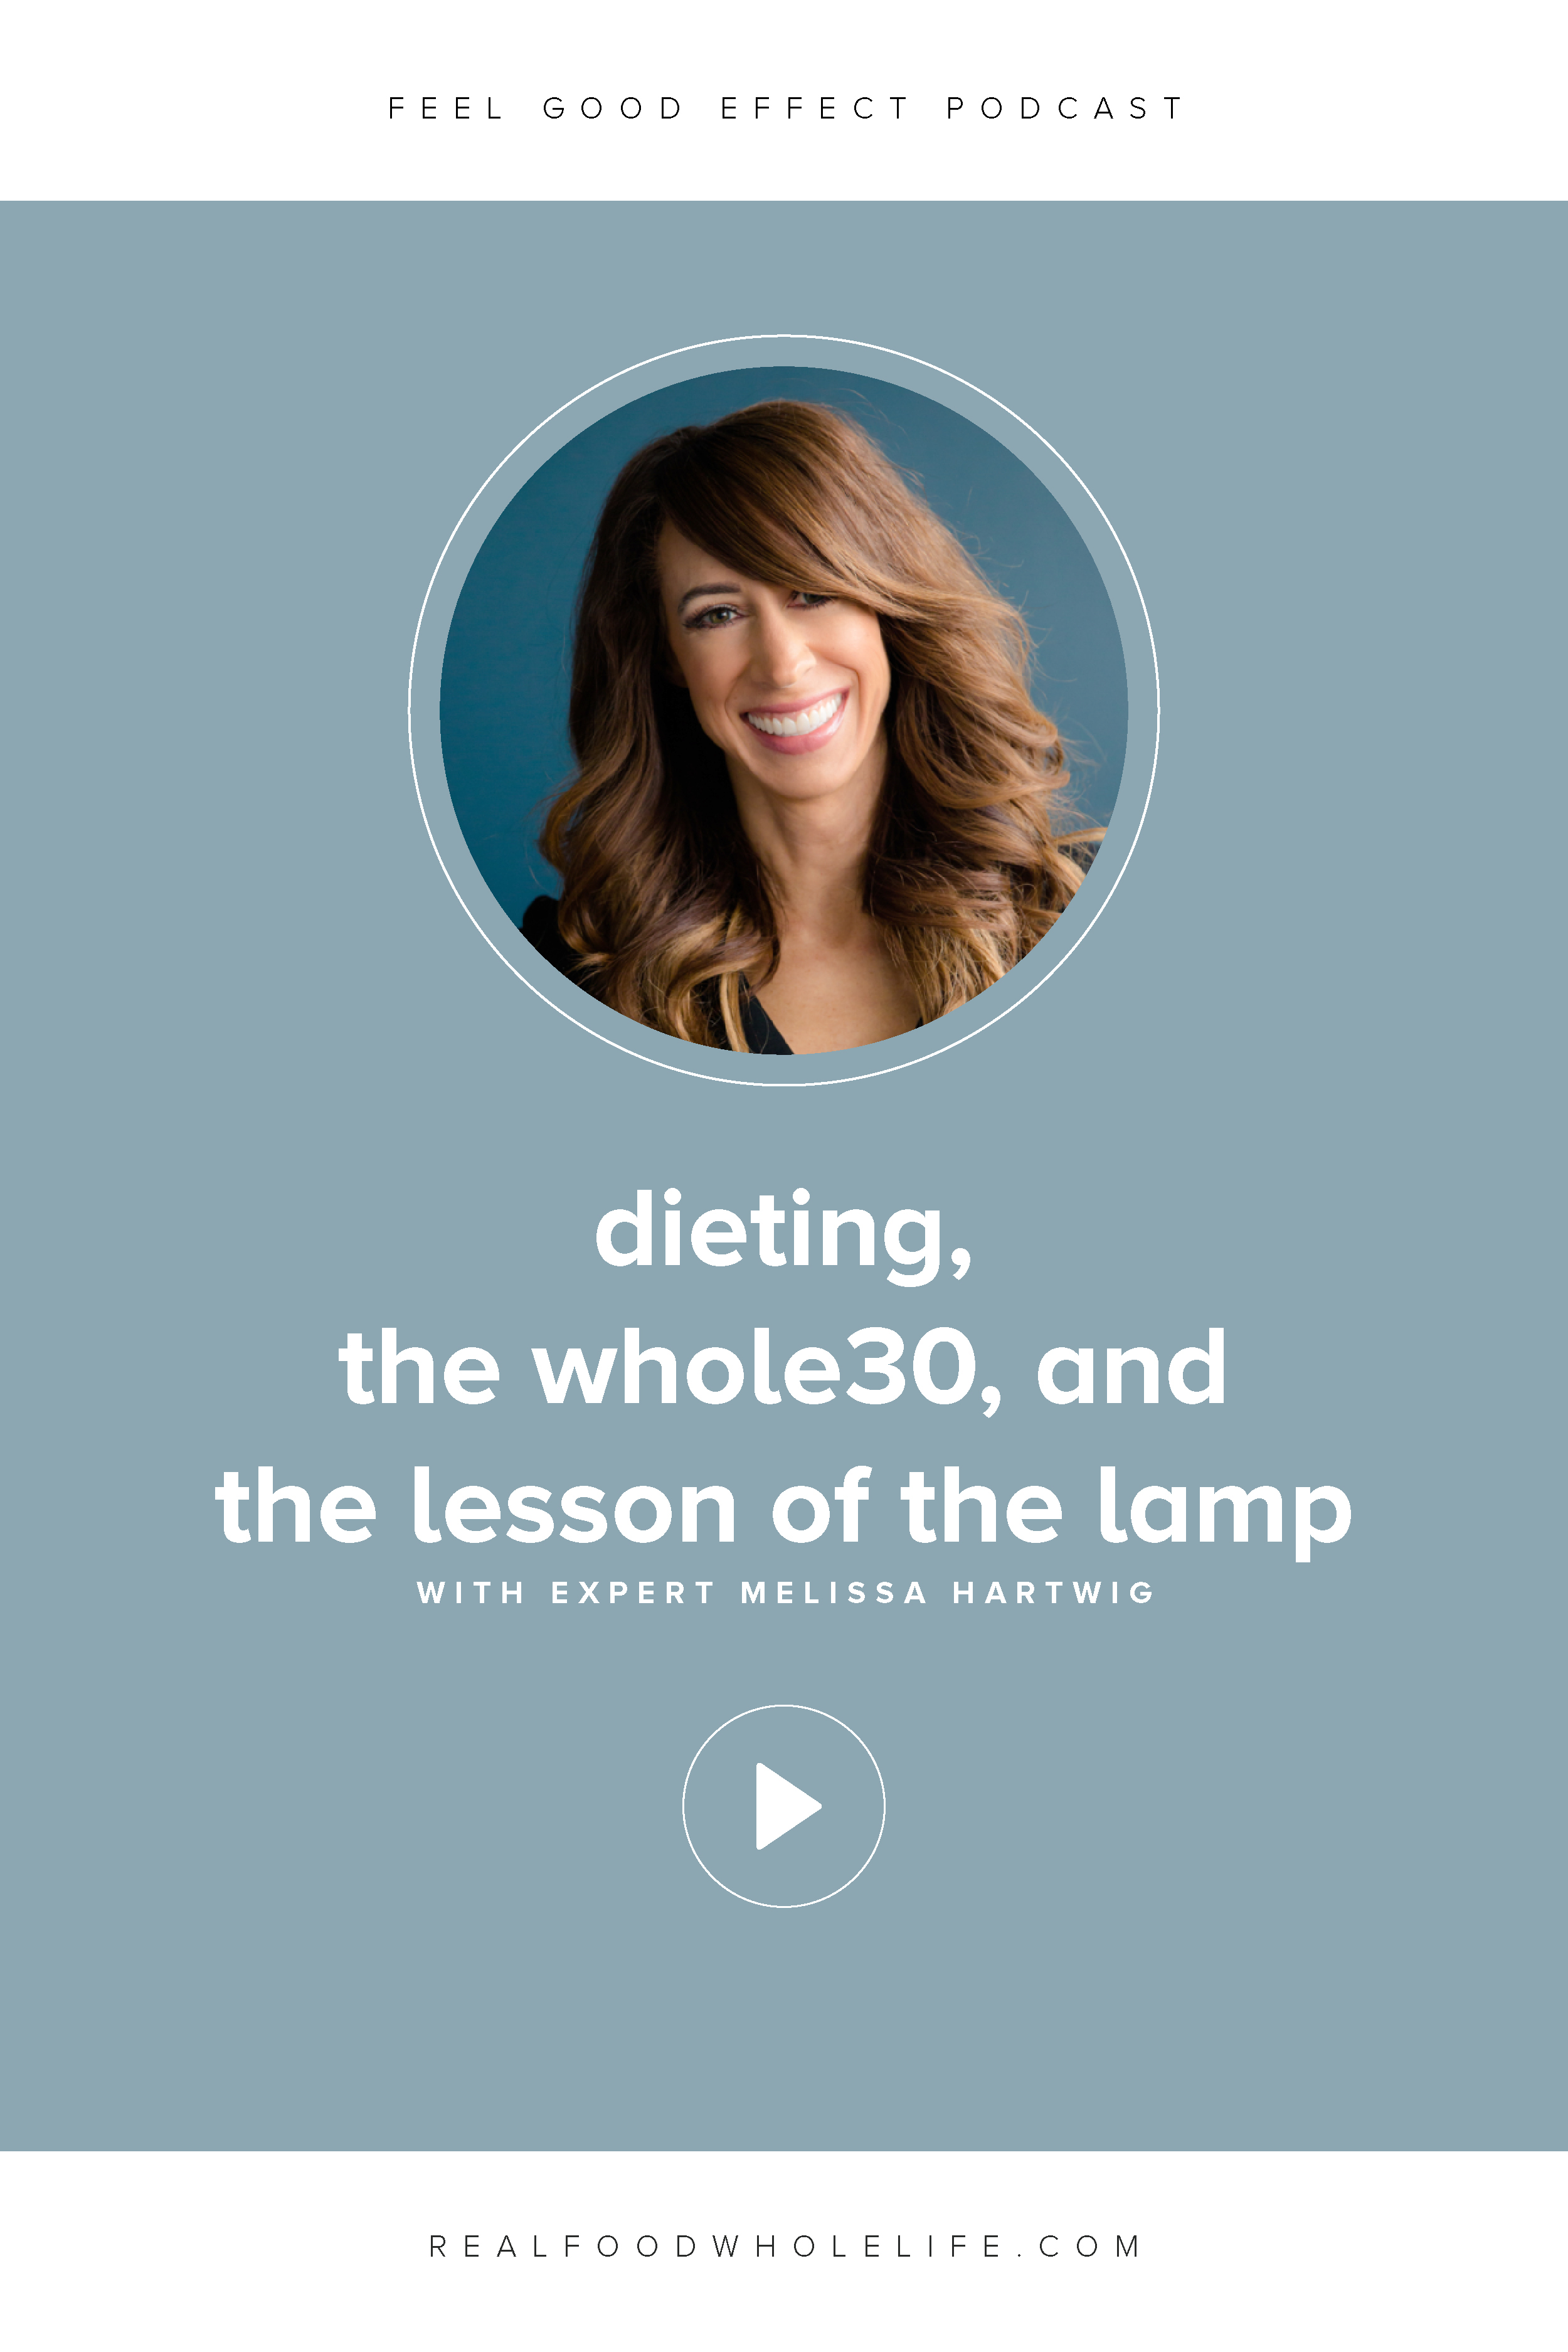 An Interview with Melissa Hartwig, Whole30 Co-Founder. Melissa talks about the Whole30, how to do a Whole30, common mistakes when doing a Whole30, hers take on dieting, and she explains all about the lesson of the lamp.  Read the interview or listen on the Feel Good Effect Podcast.   #feelgoodeffectpodcast #podcast #wellness #healthyandwellness #wellnesspodcast #healthpodcast #healthandwellnesspodcast #selfhelp #selfimprovement #healthylifestyle #healthyliving #whole30 #melissahartwig #whole30septemeber